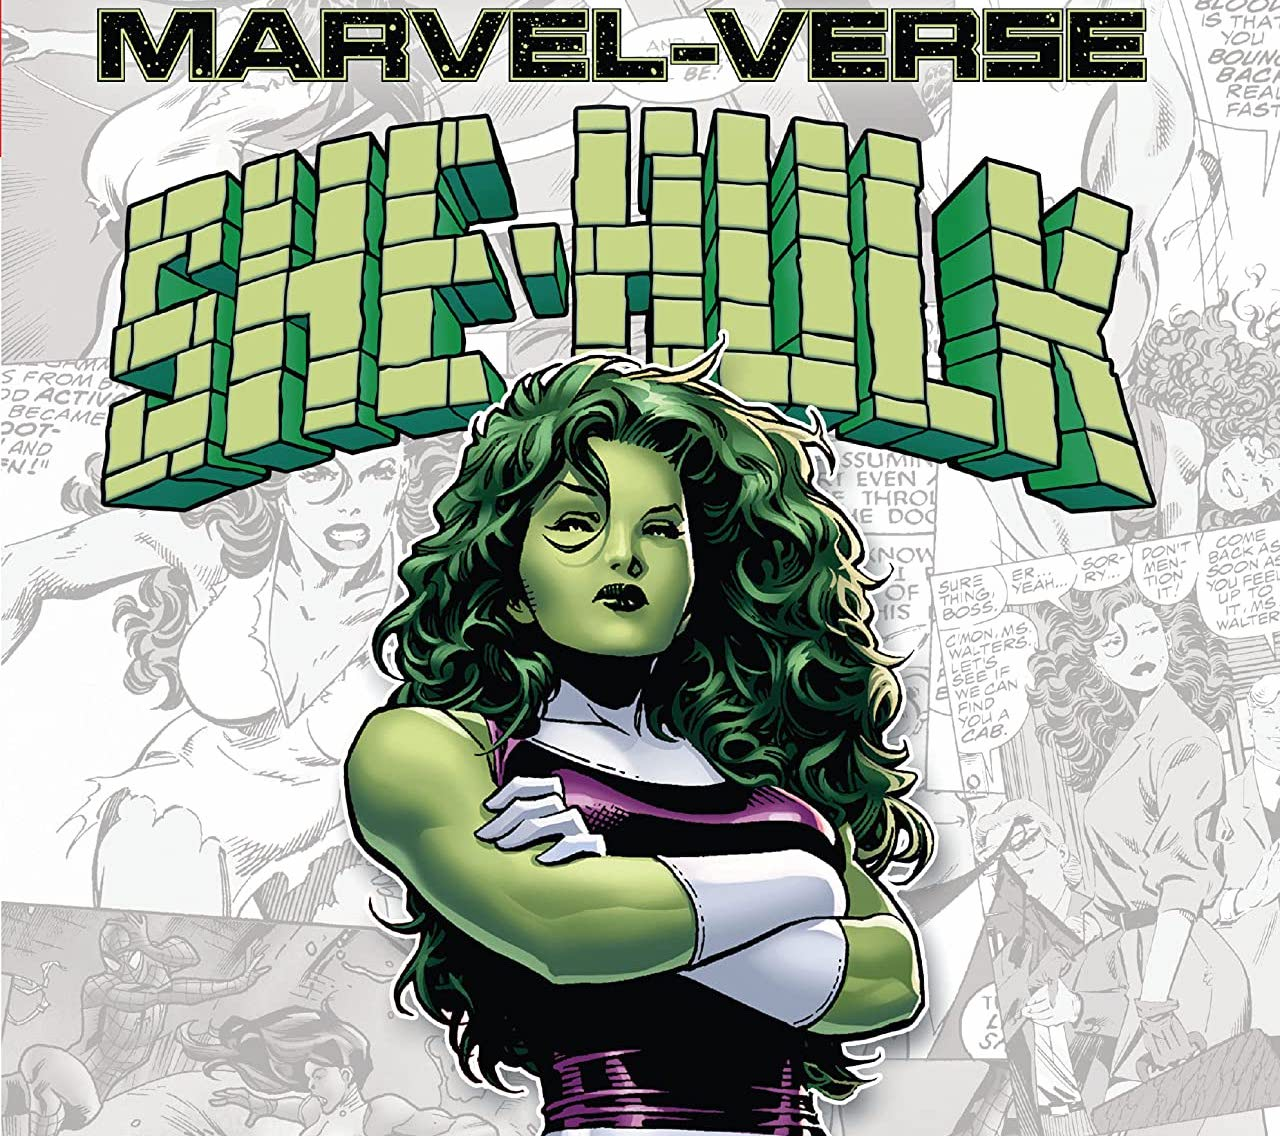 'Marvel-Verse: She-Hulk' is a good taster for new readers